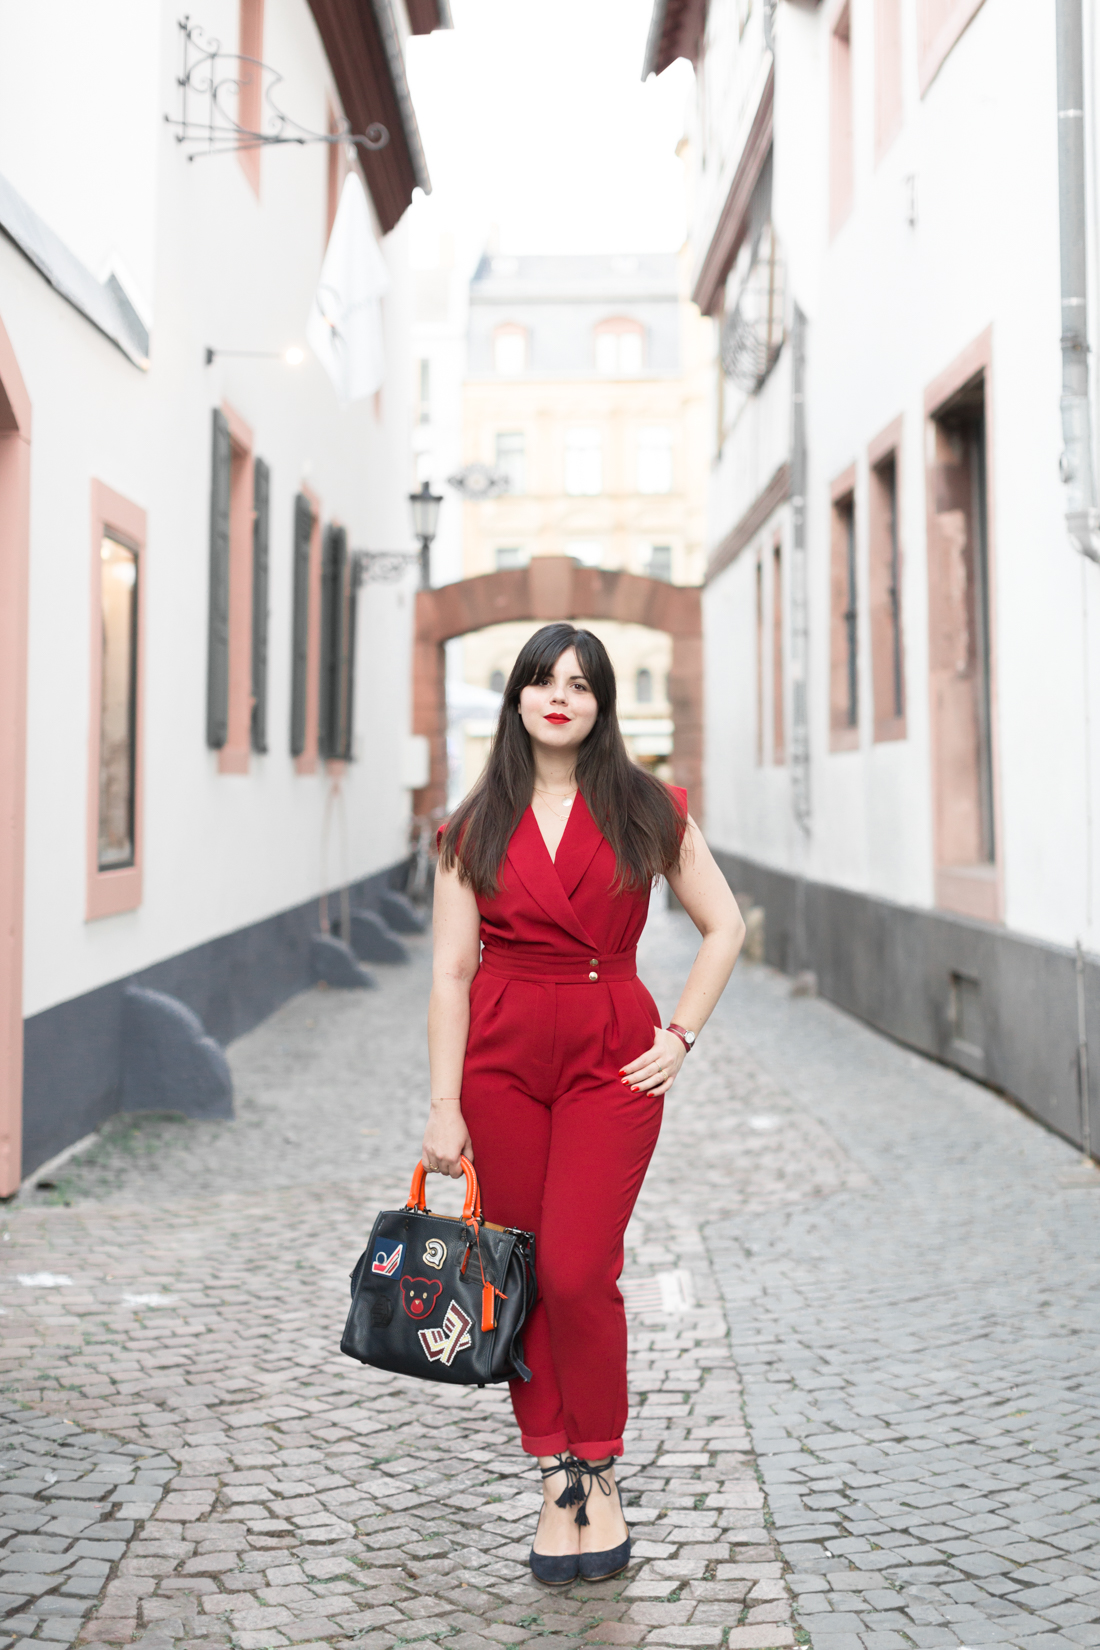 varsity-rogue-bag-coach-new-york-red-jumpsuit-valentina-sezane-marine-copyright-pauline-paulinefashionblog-com-5